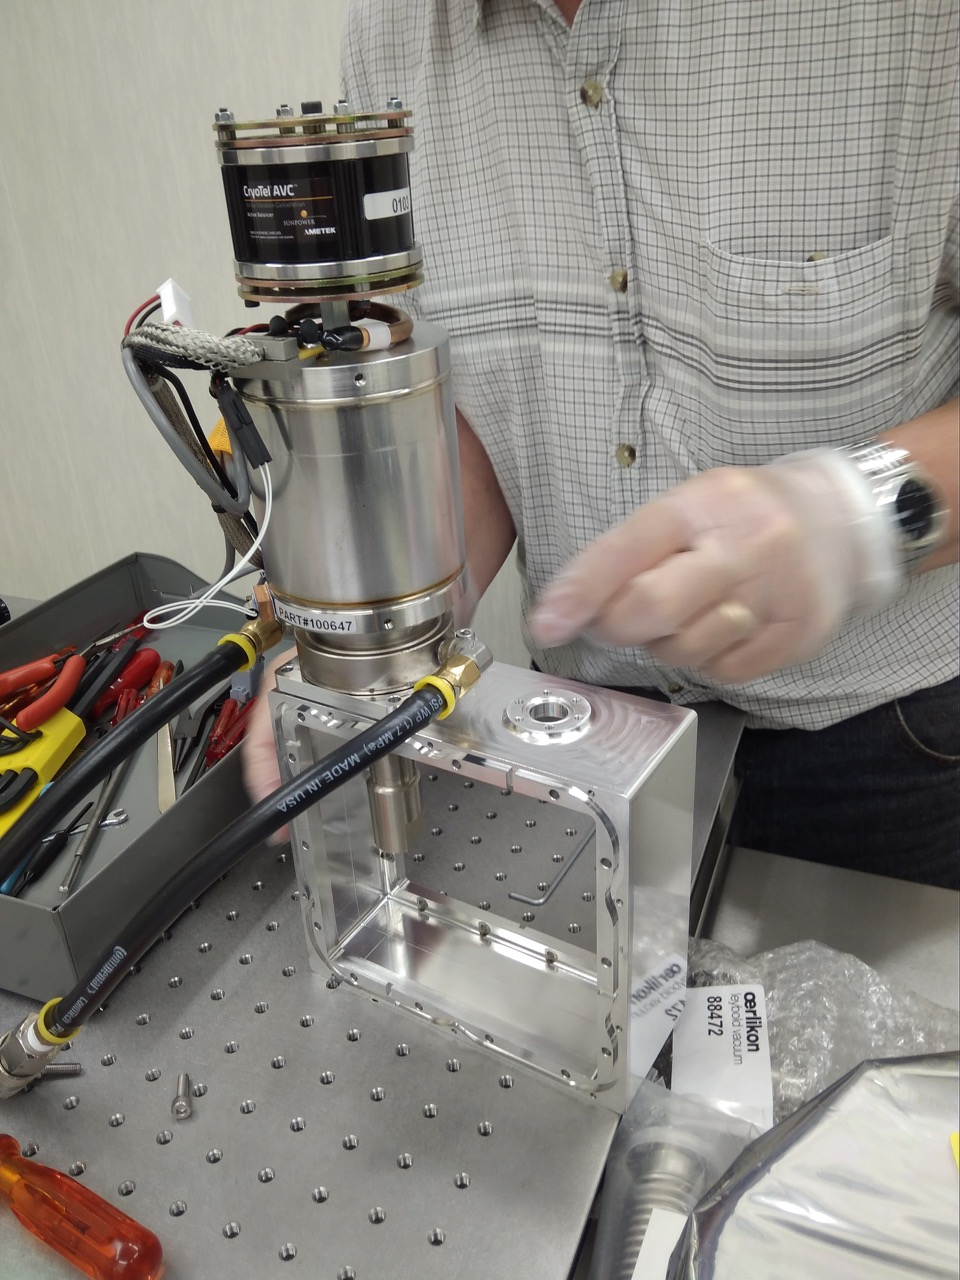 Fig. 4. Test mounting of the CryoTel cooler, which will be used to reduce the temperature of the CCD to approximately 170K.